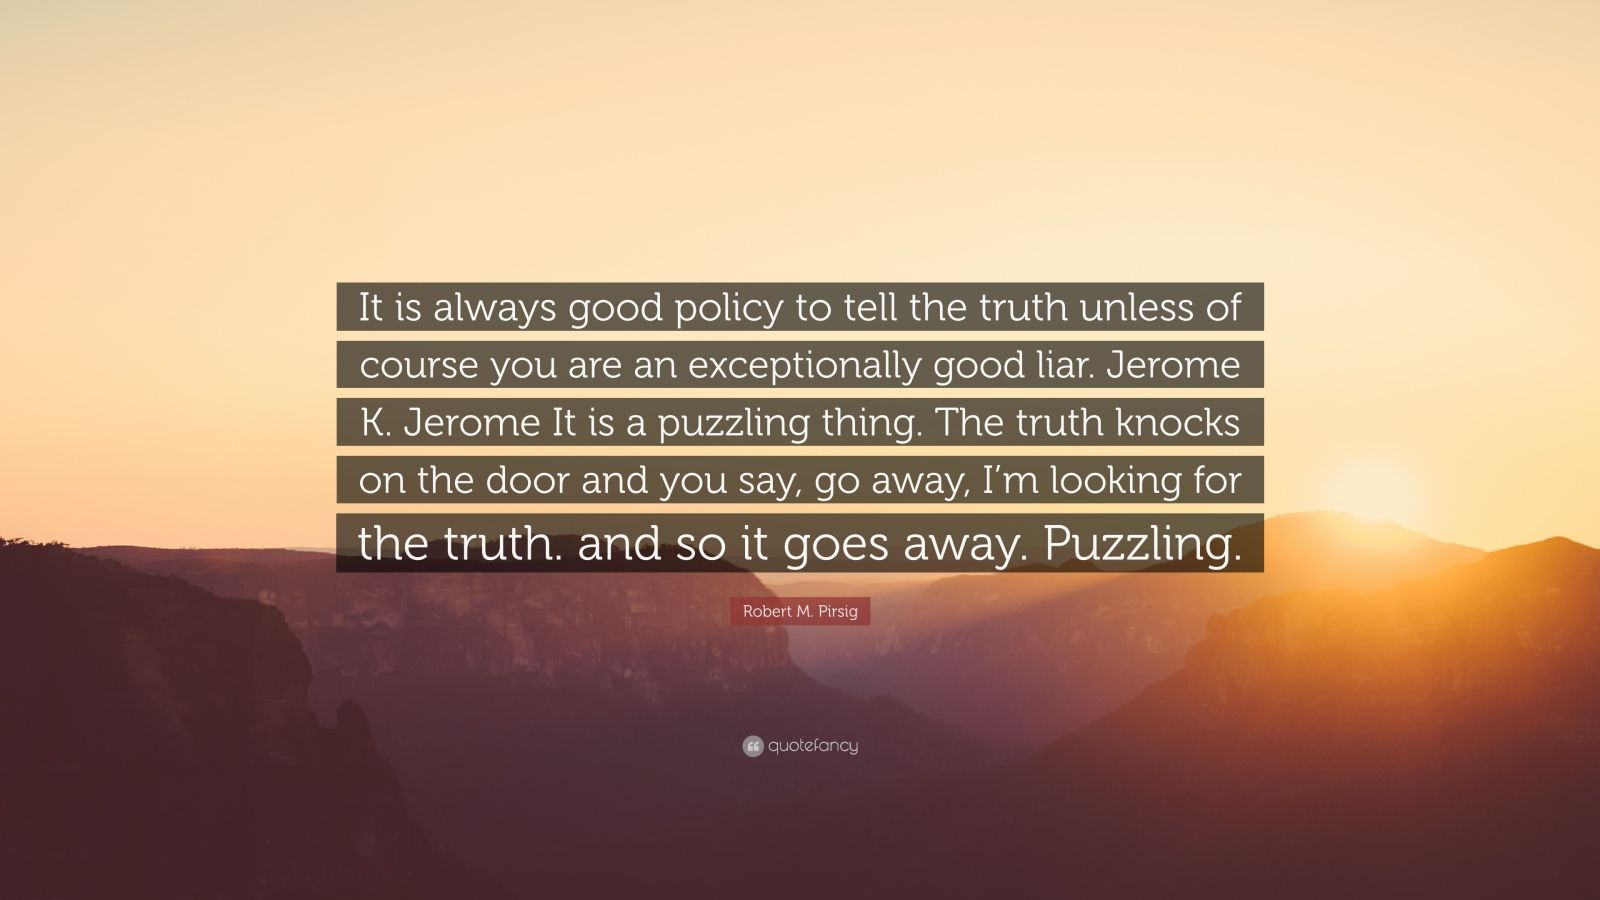 "Robert M. Pirsig Quote: ""It is always good policy to tell the truth unless of course you are an exceptionally good liar. Jerome K. Jerome It is a puzzling thing. The truth knocks on the door and you say, go away, I'm looking for the truth. and so it goes away. Puzzling."""